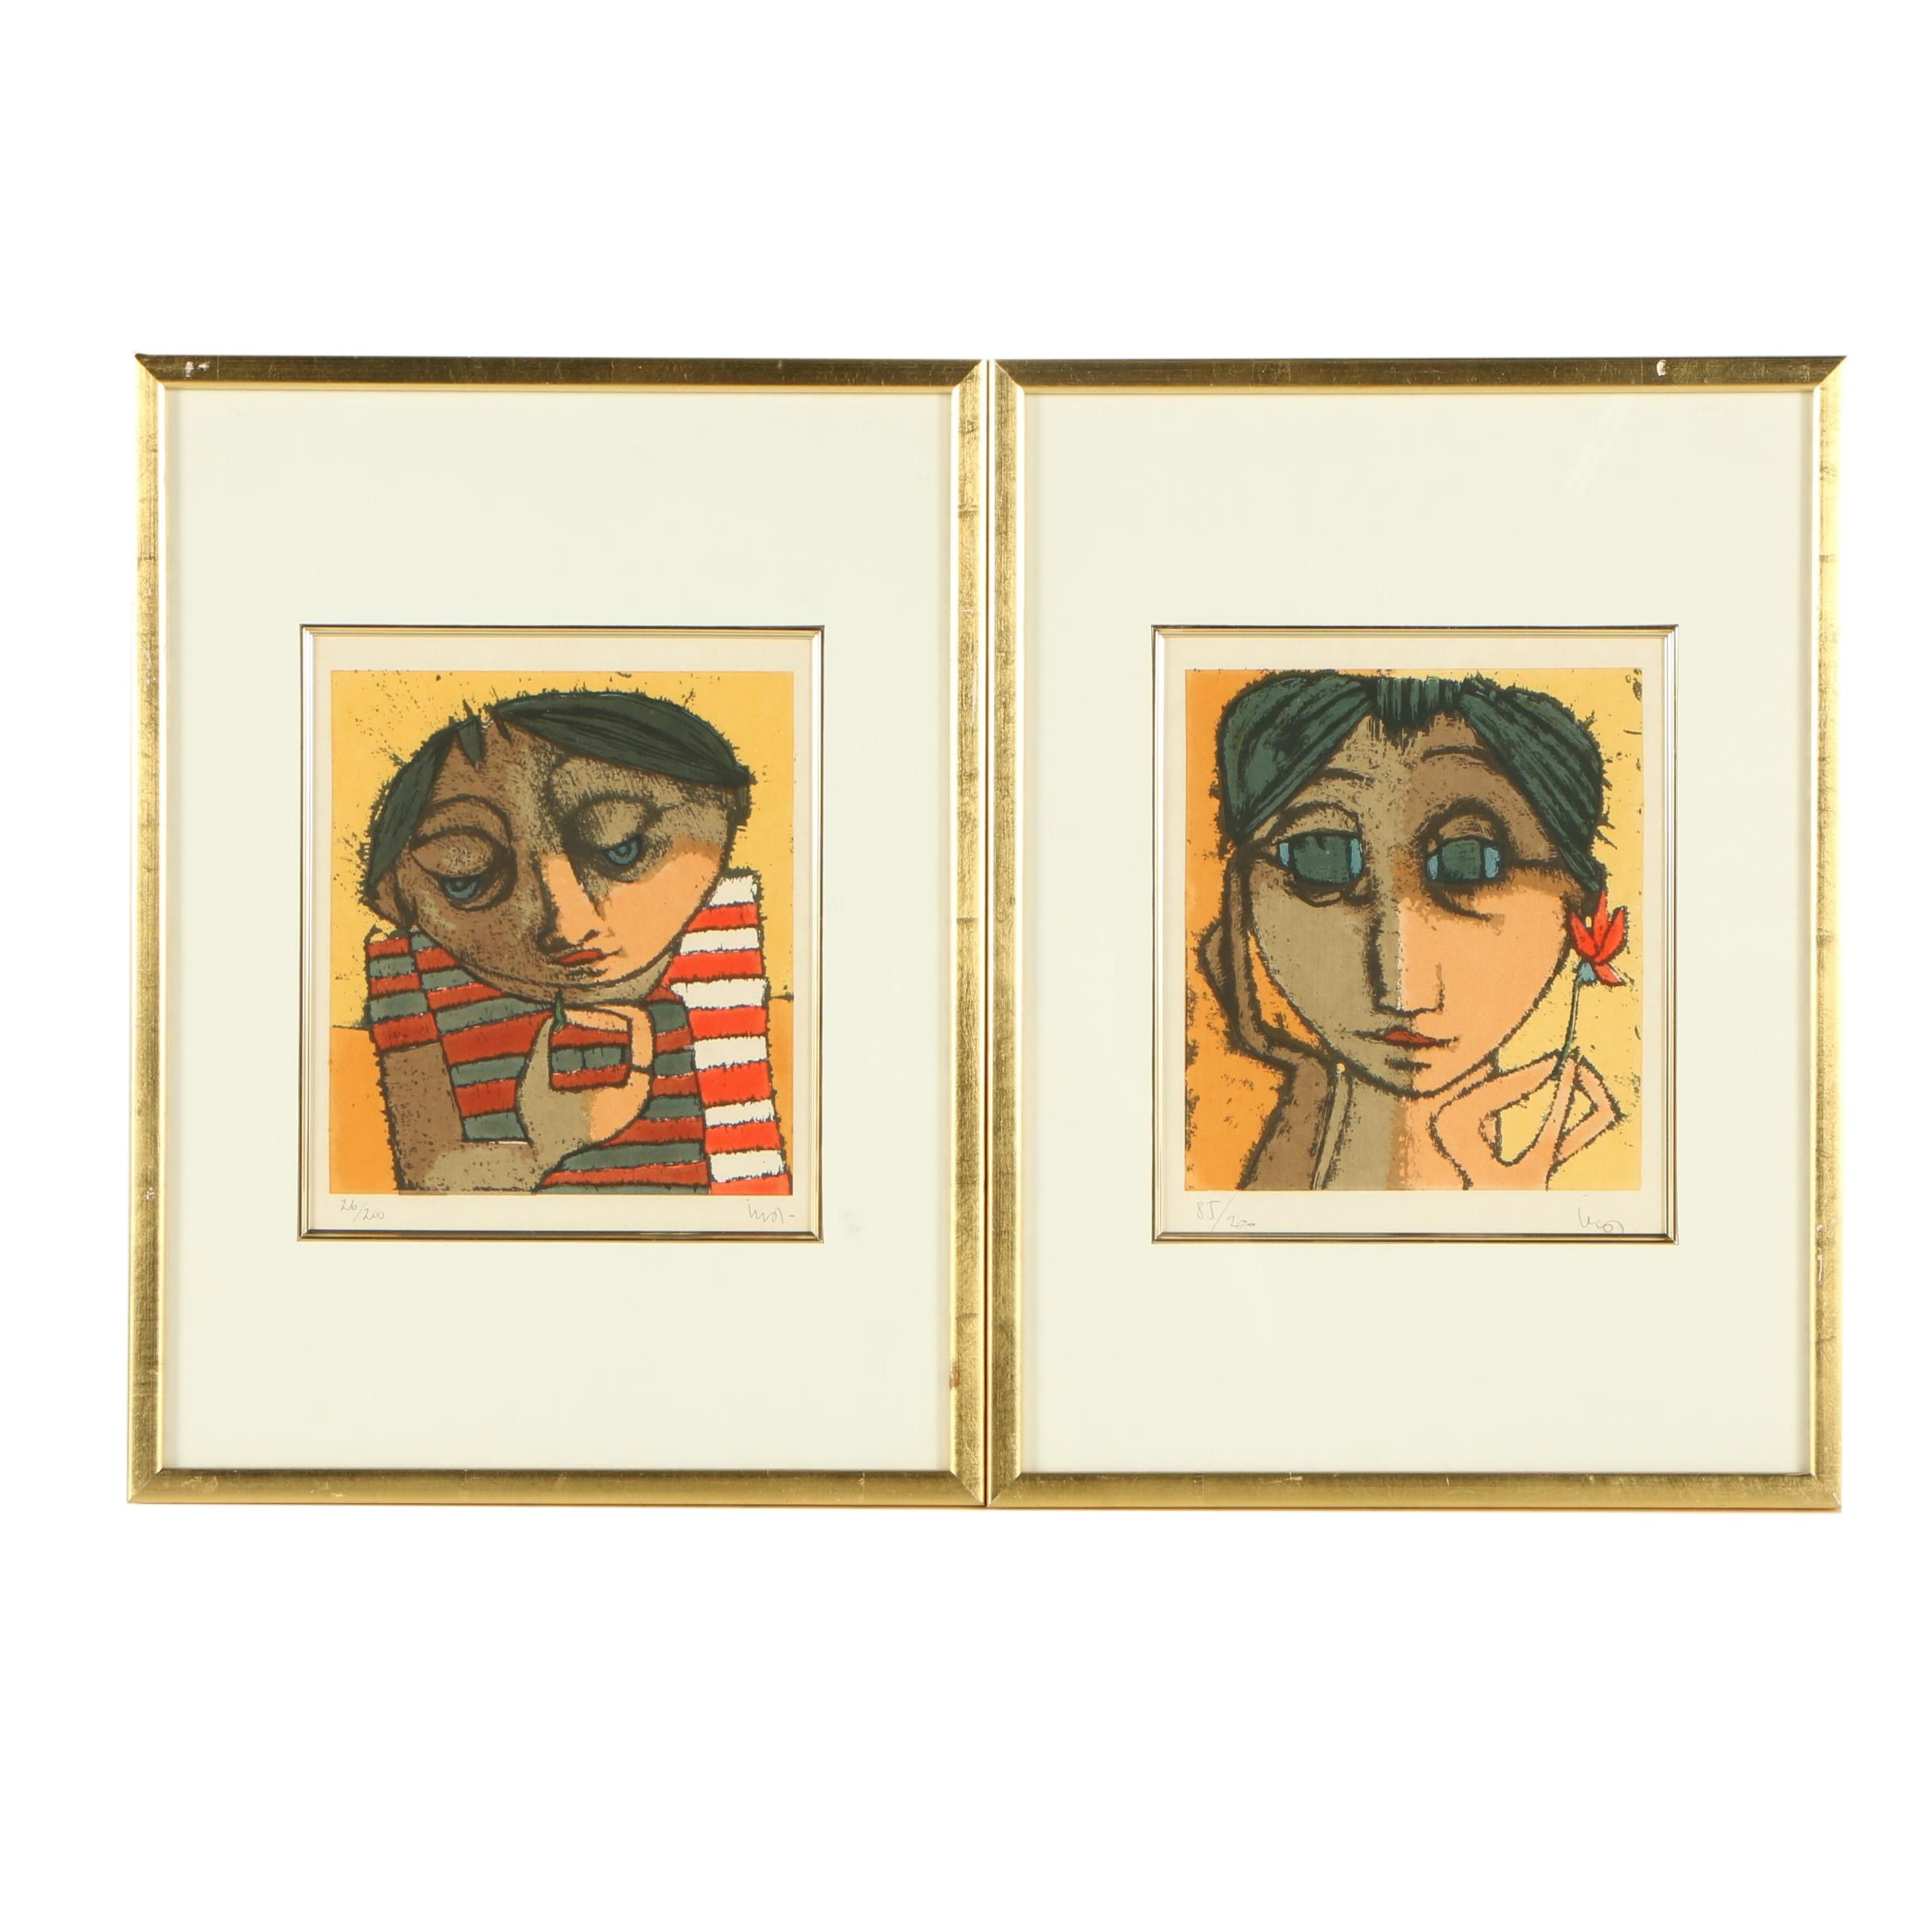 Limited Edition Serigraph Portraits